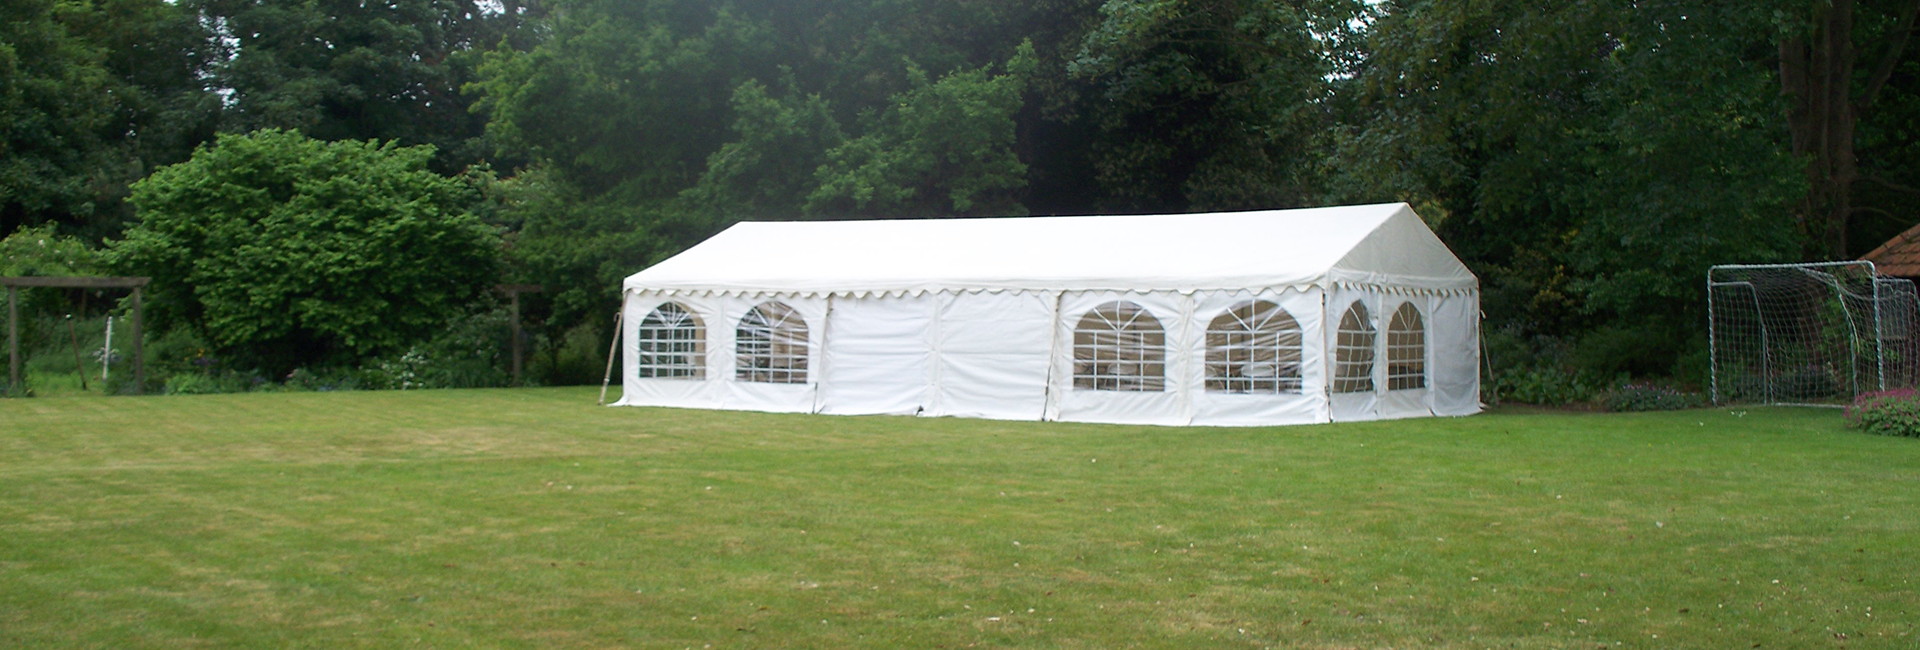 marquee chelmsford essex rent a party tent